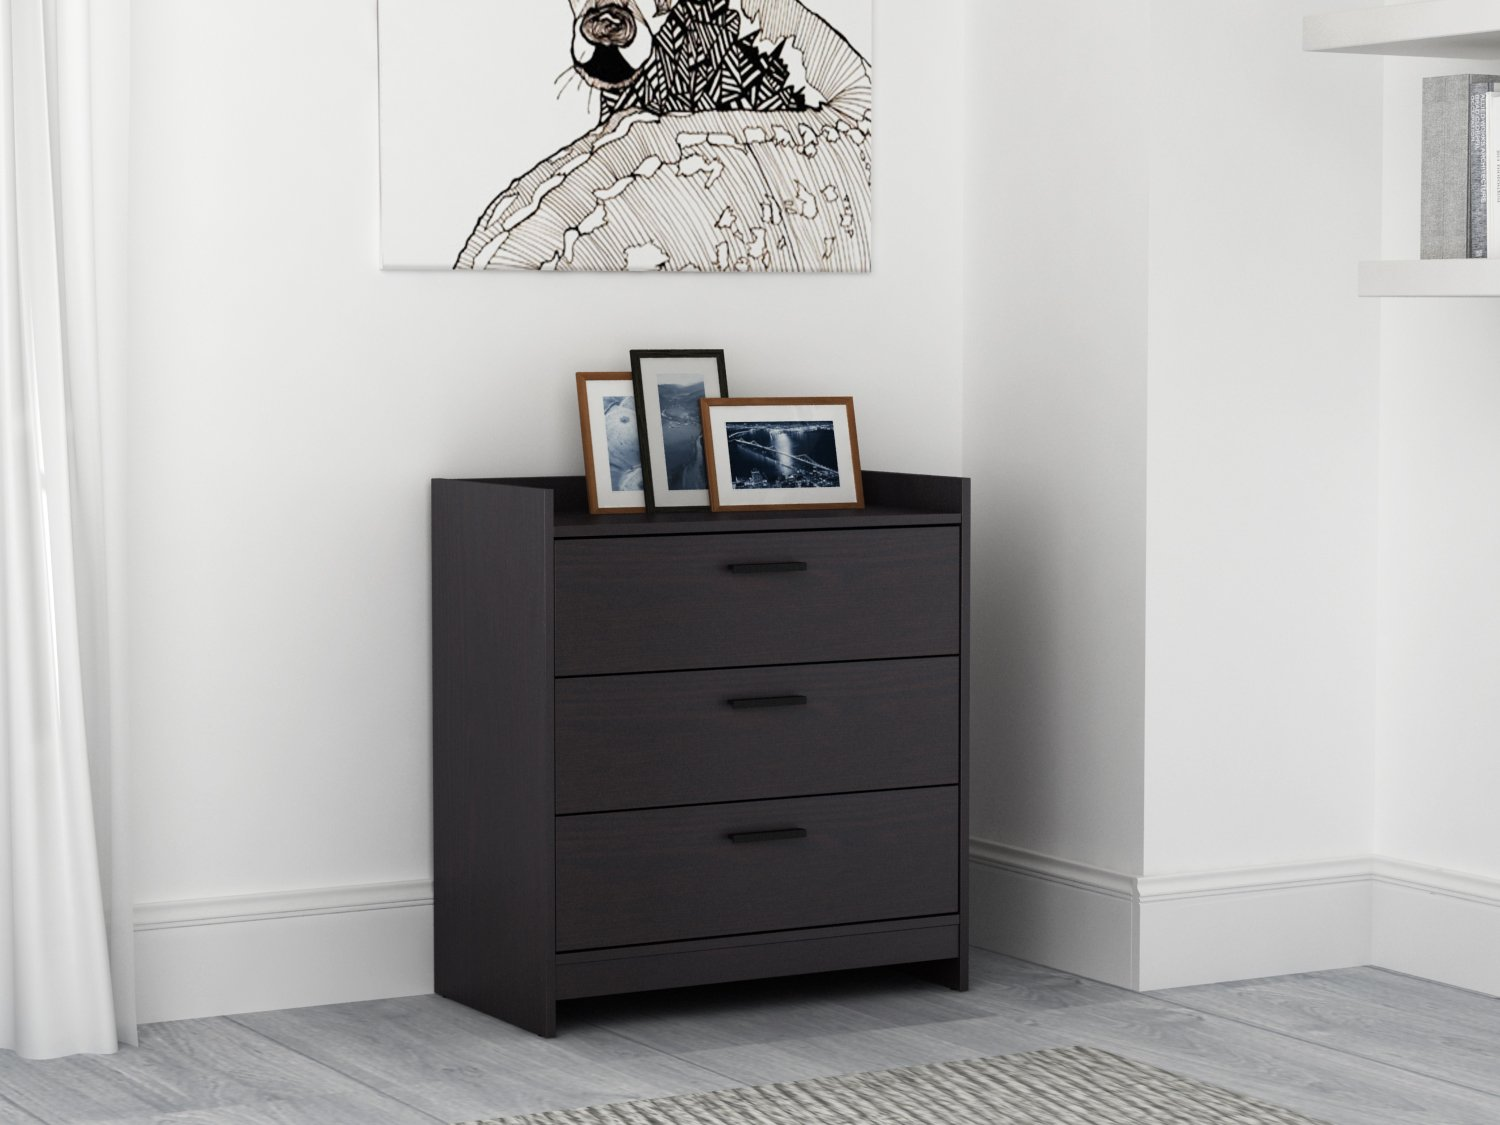 Homestar EB208751B9 Central Park 3 Drawer Chest, 15.98 X 27.48 X 30, Black Brown Homestar North America